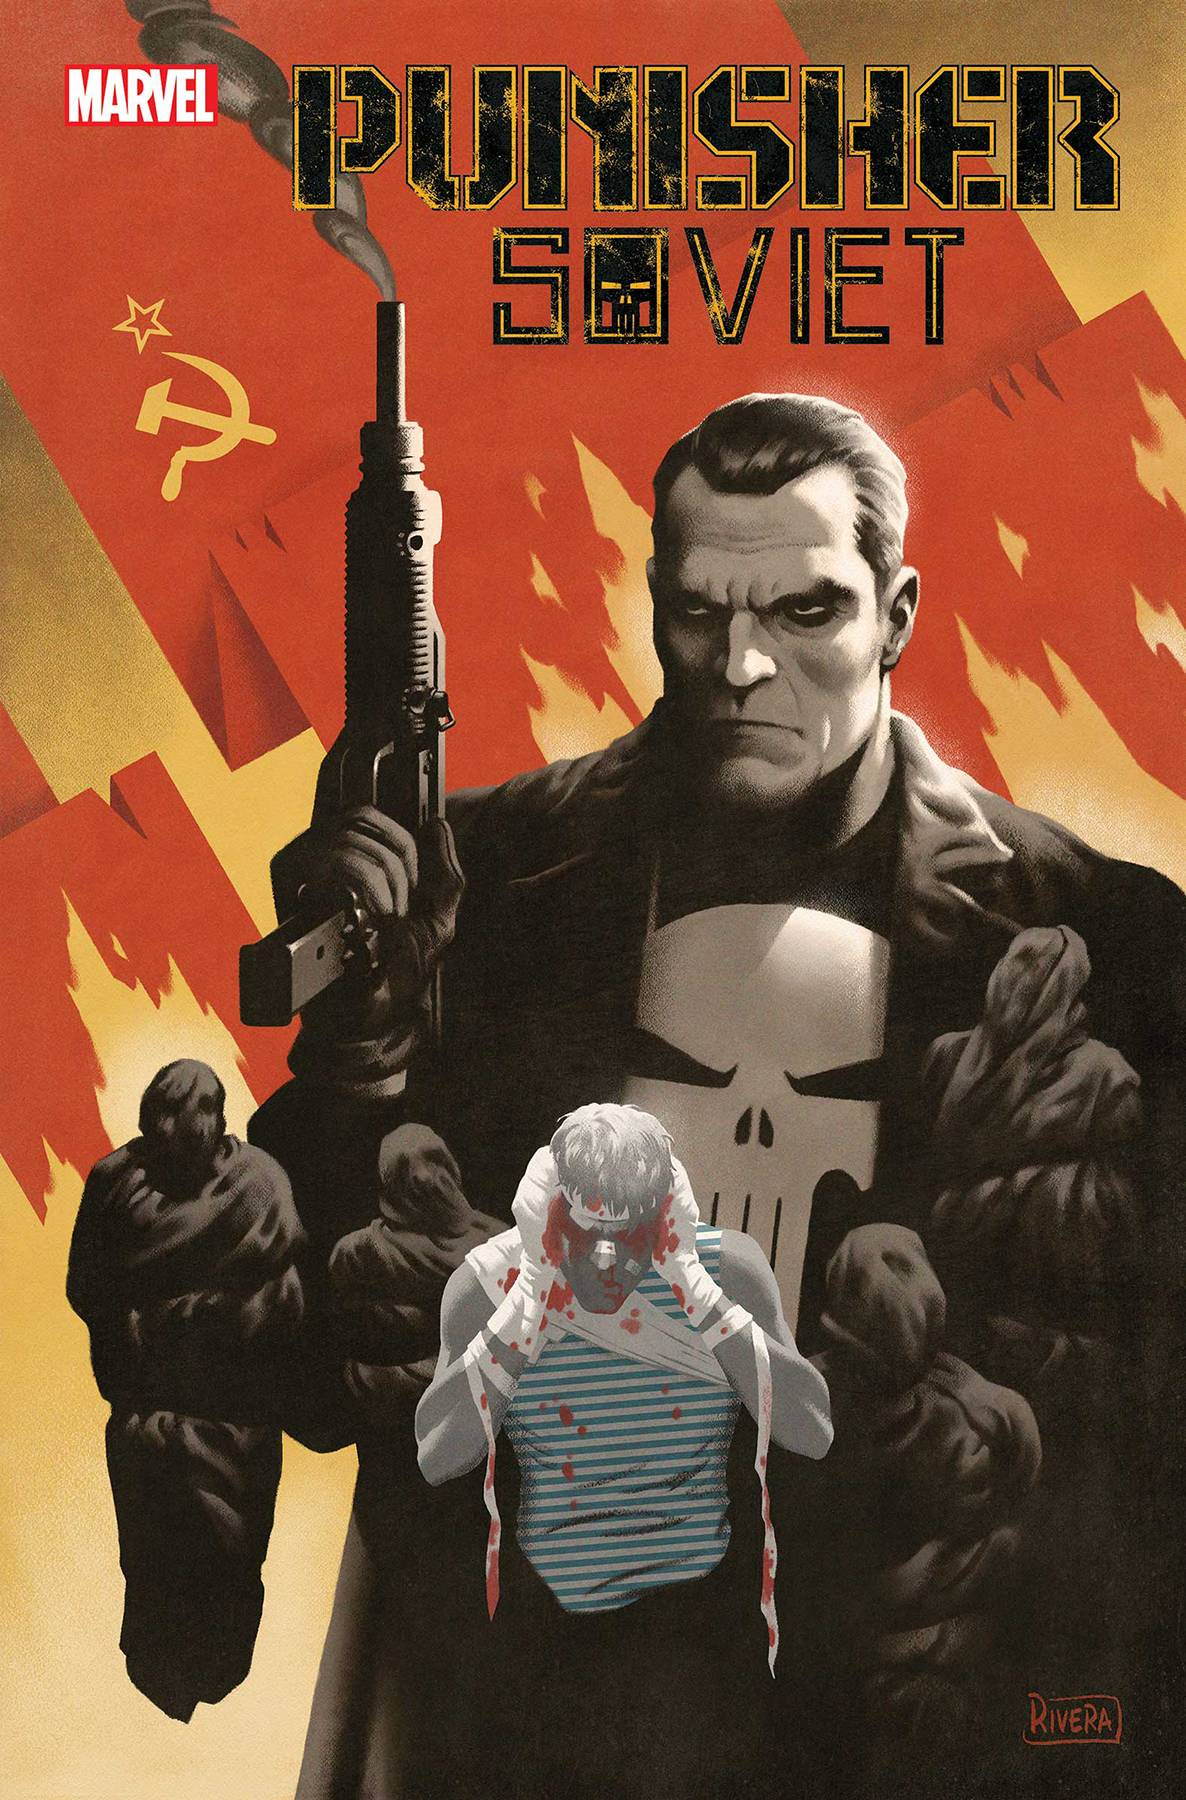 Punisher Soviet #3 (of 6)